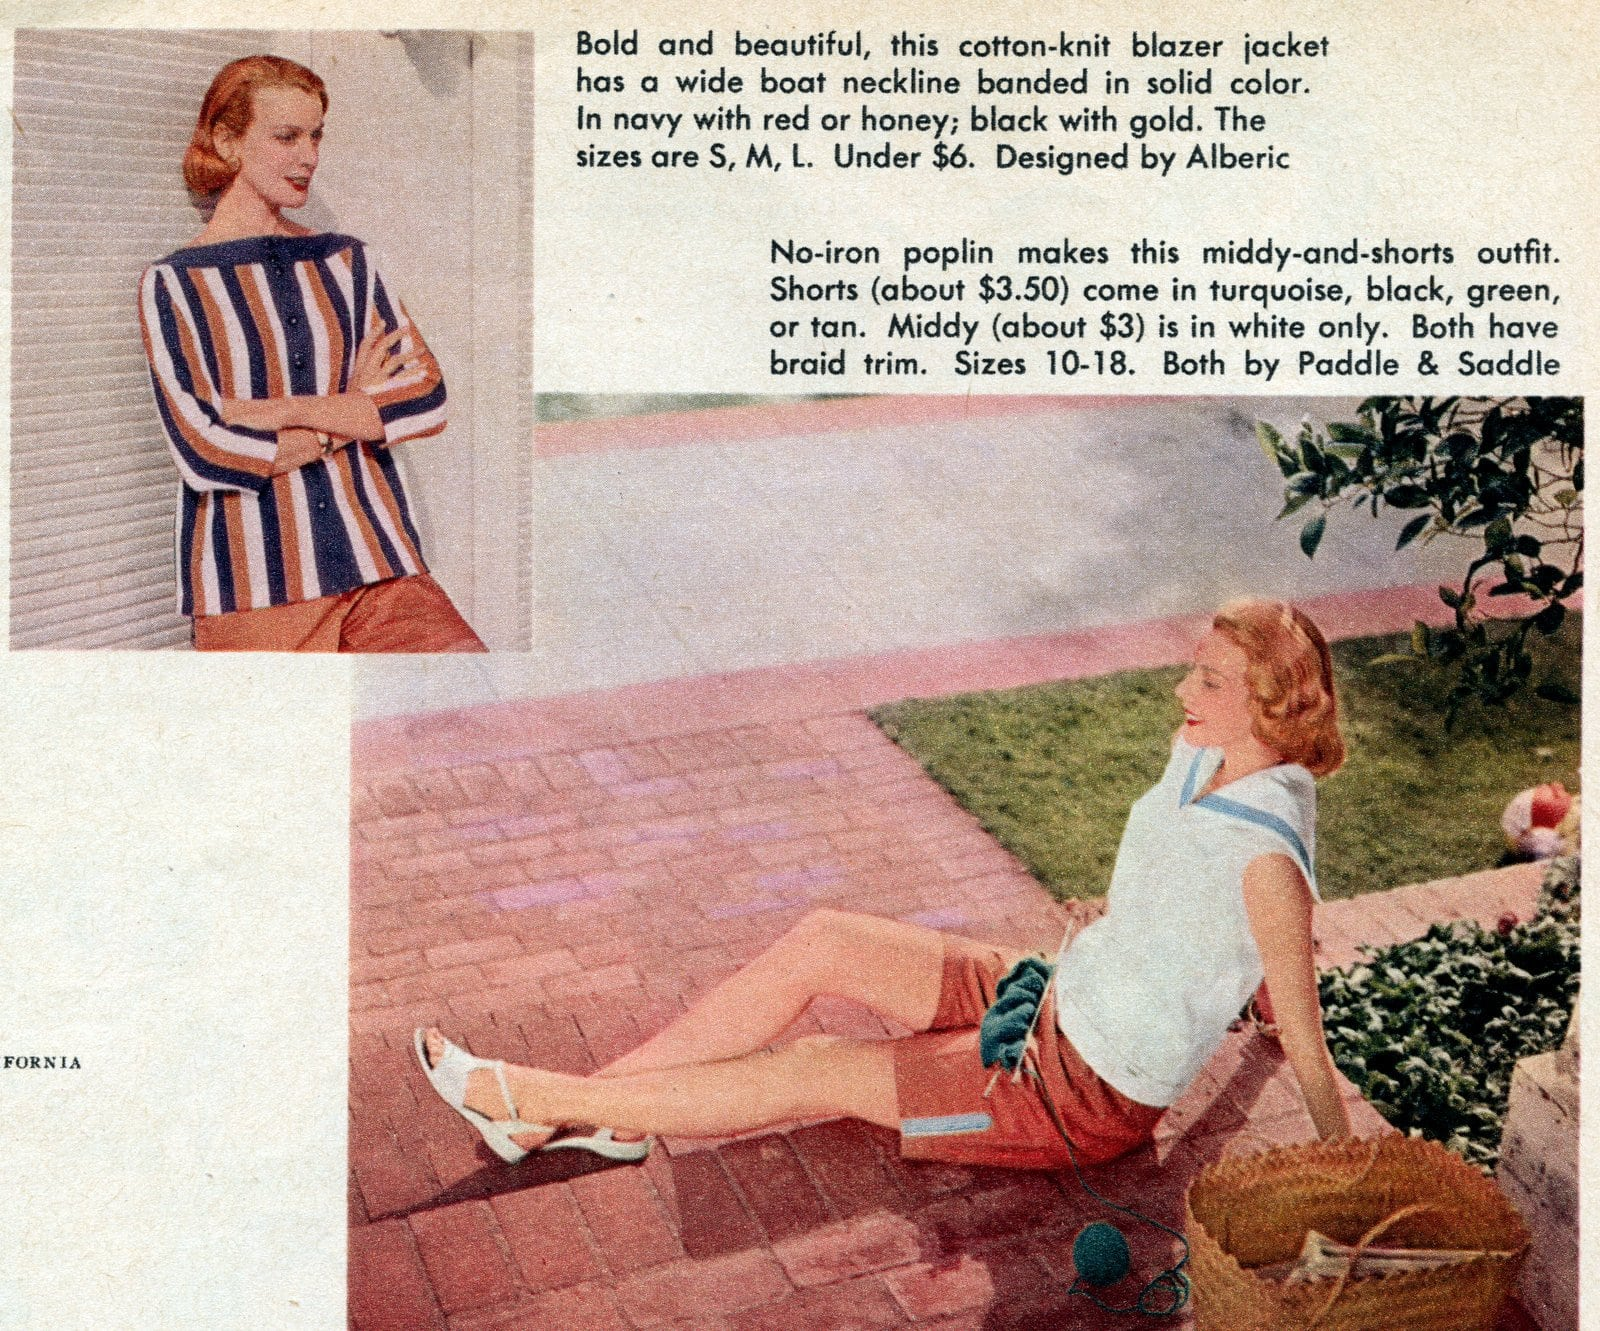 Vintage playwear - summer fashhions for women from the 1950s (3)